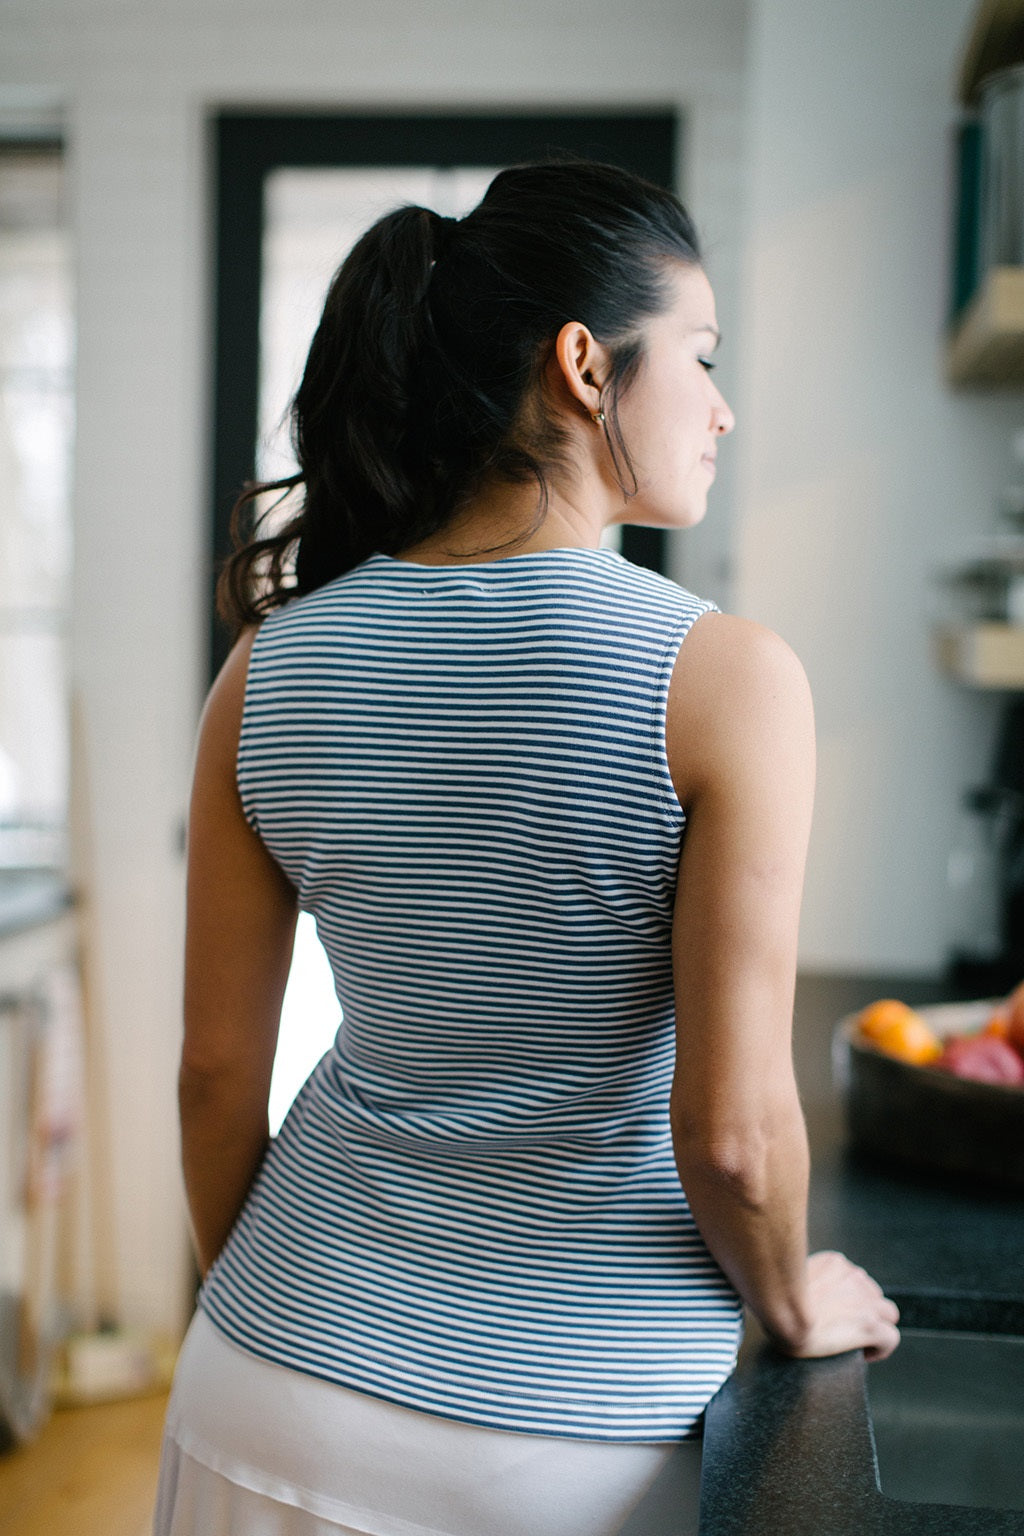 KOKOON Pull Tab Tank in Blue and White Sailor Stripe Back